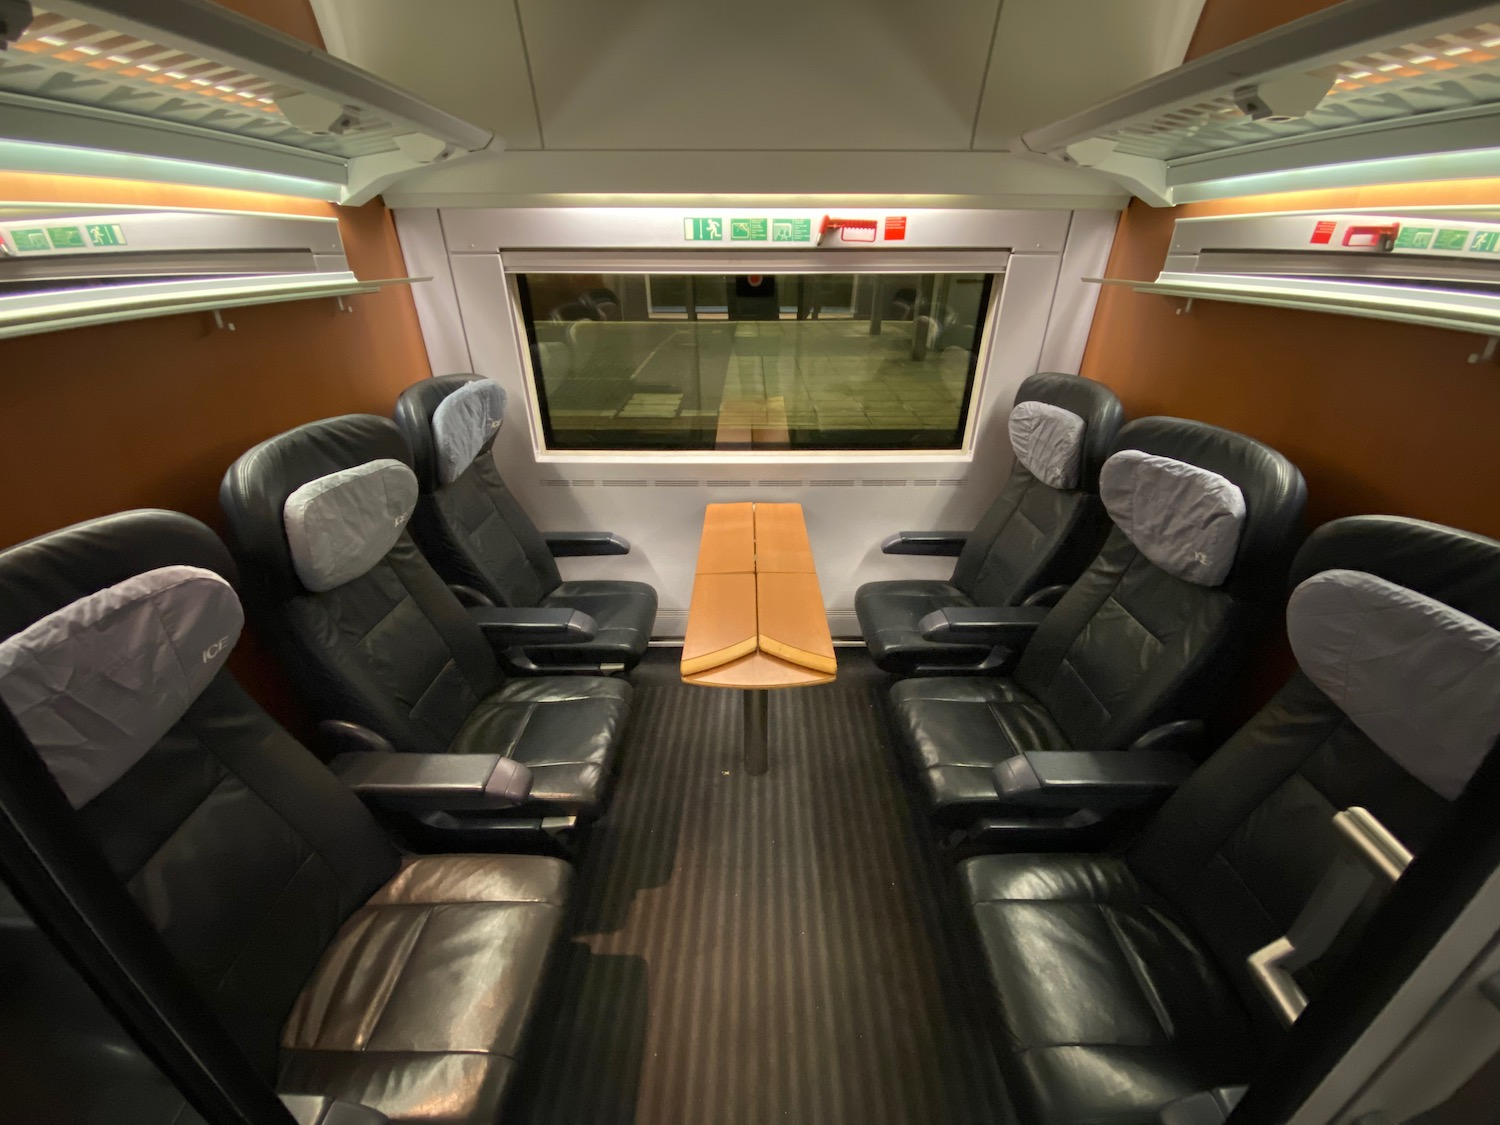 Train Review: Deutsche Bahn Intercity Express (ICE) First Class - Live and Let's Fly